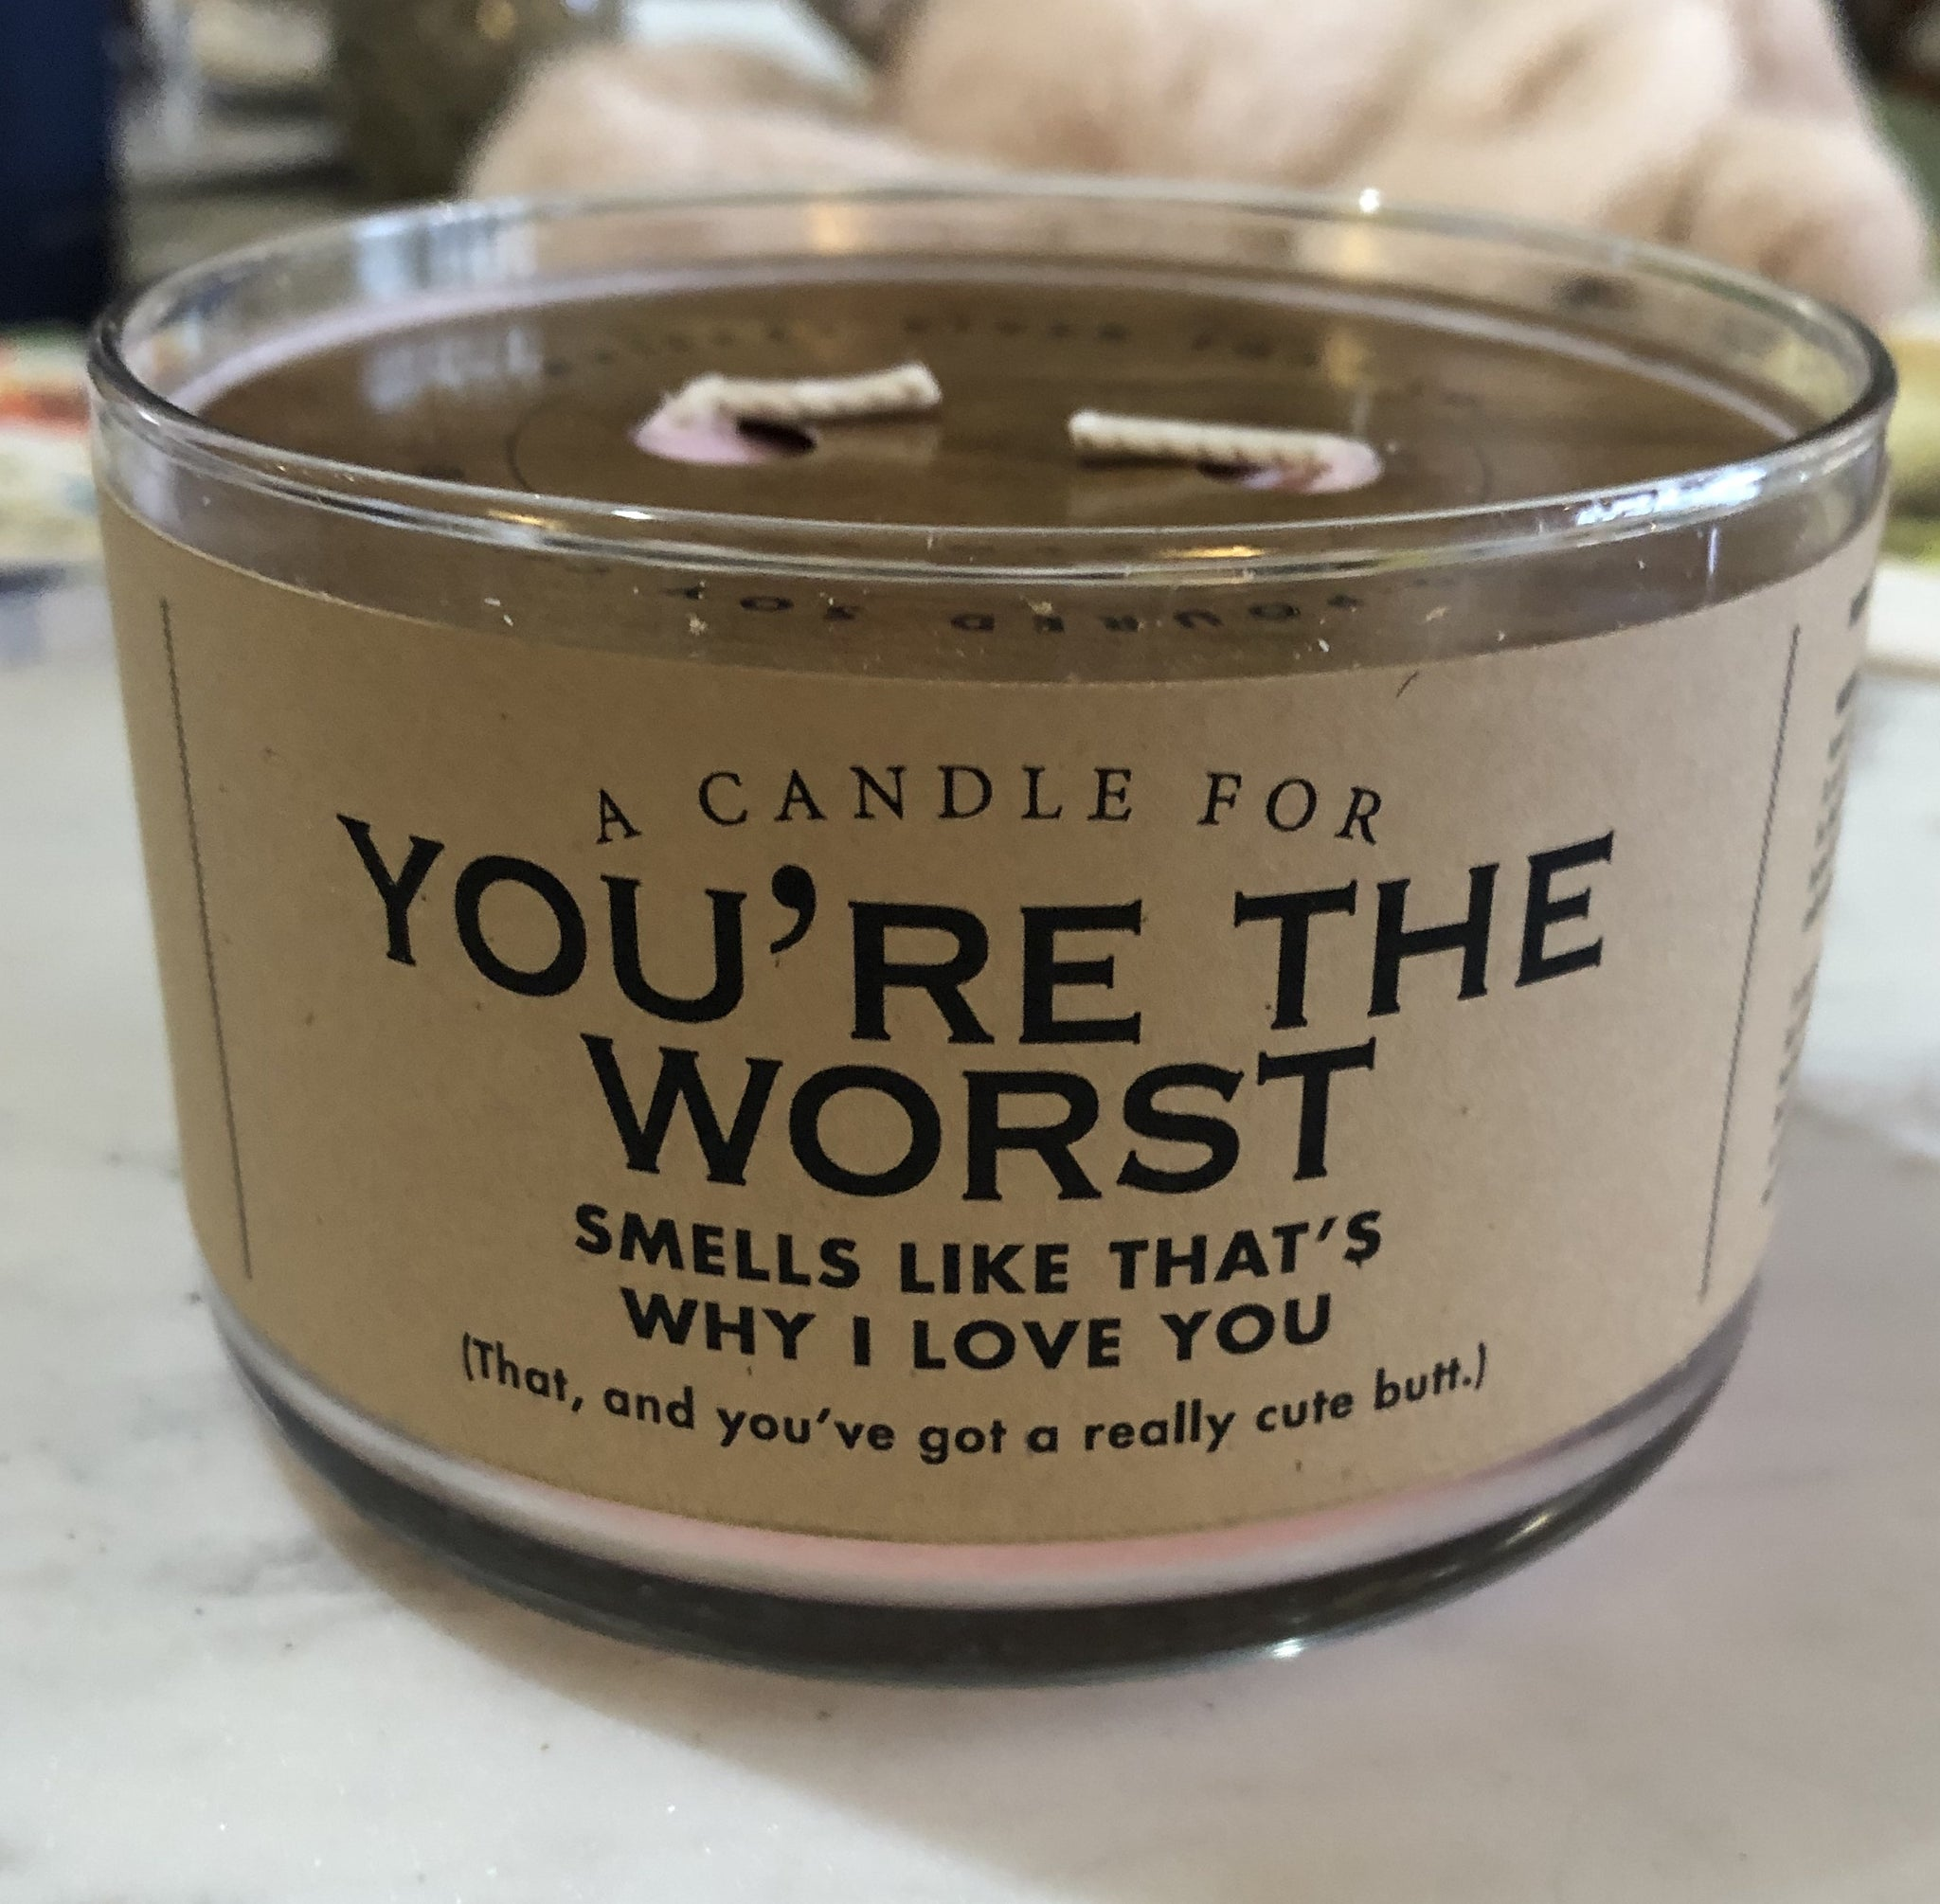 You're the Worst Candle